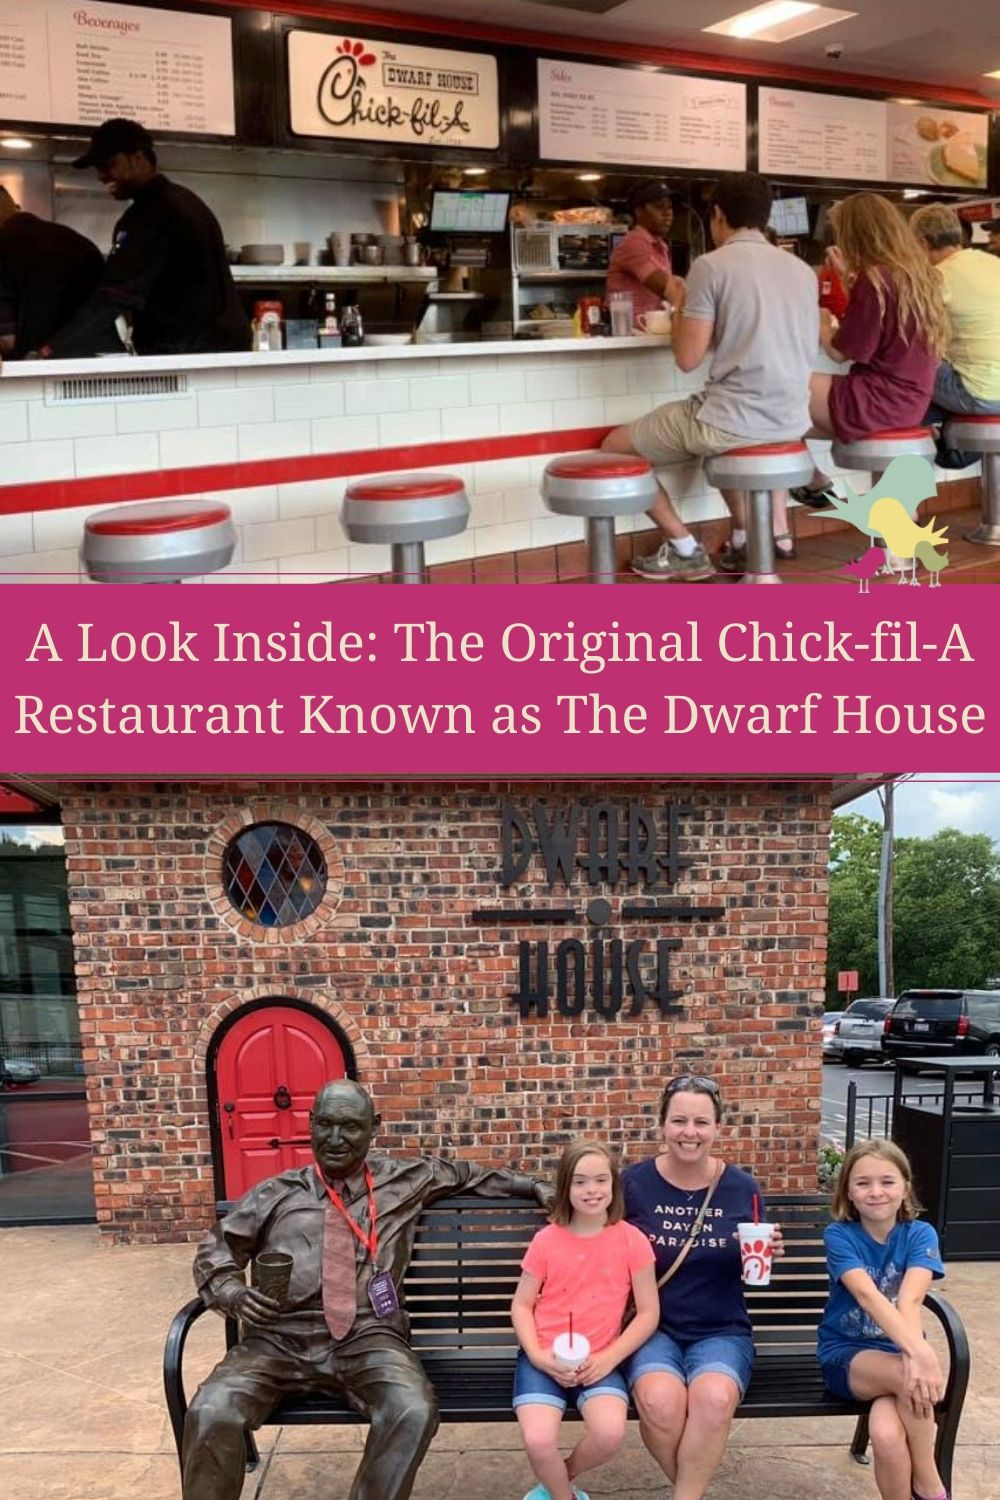 A Look Inside: The Original Chick-fil-A Restaurant Known as The Dwarf House